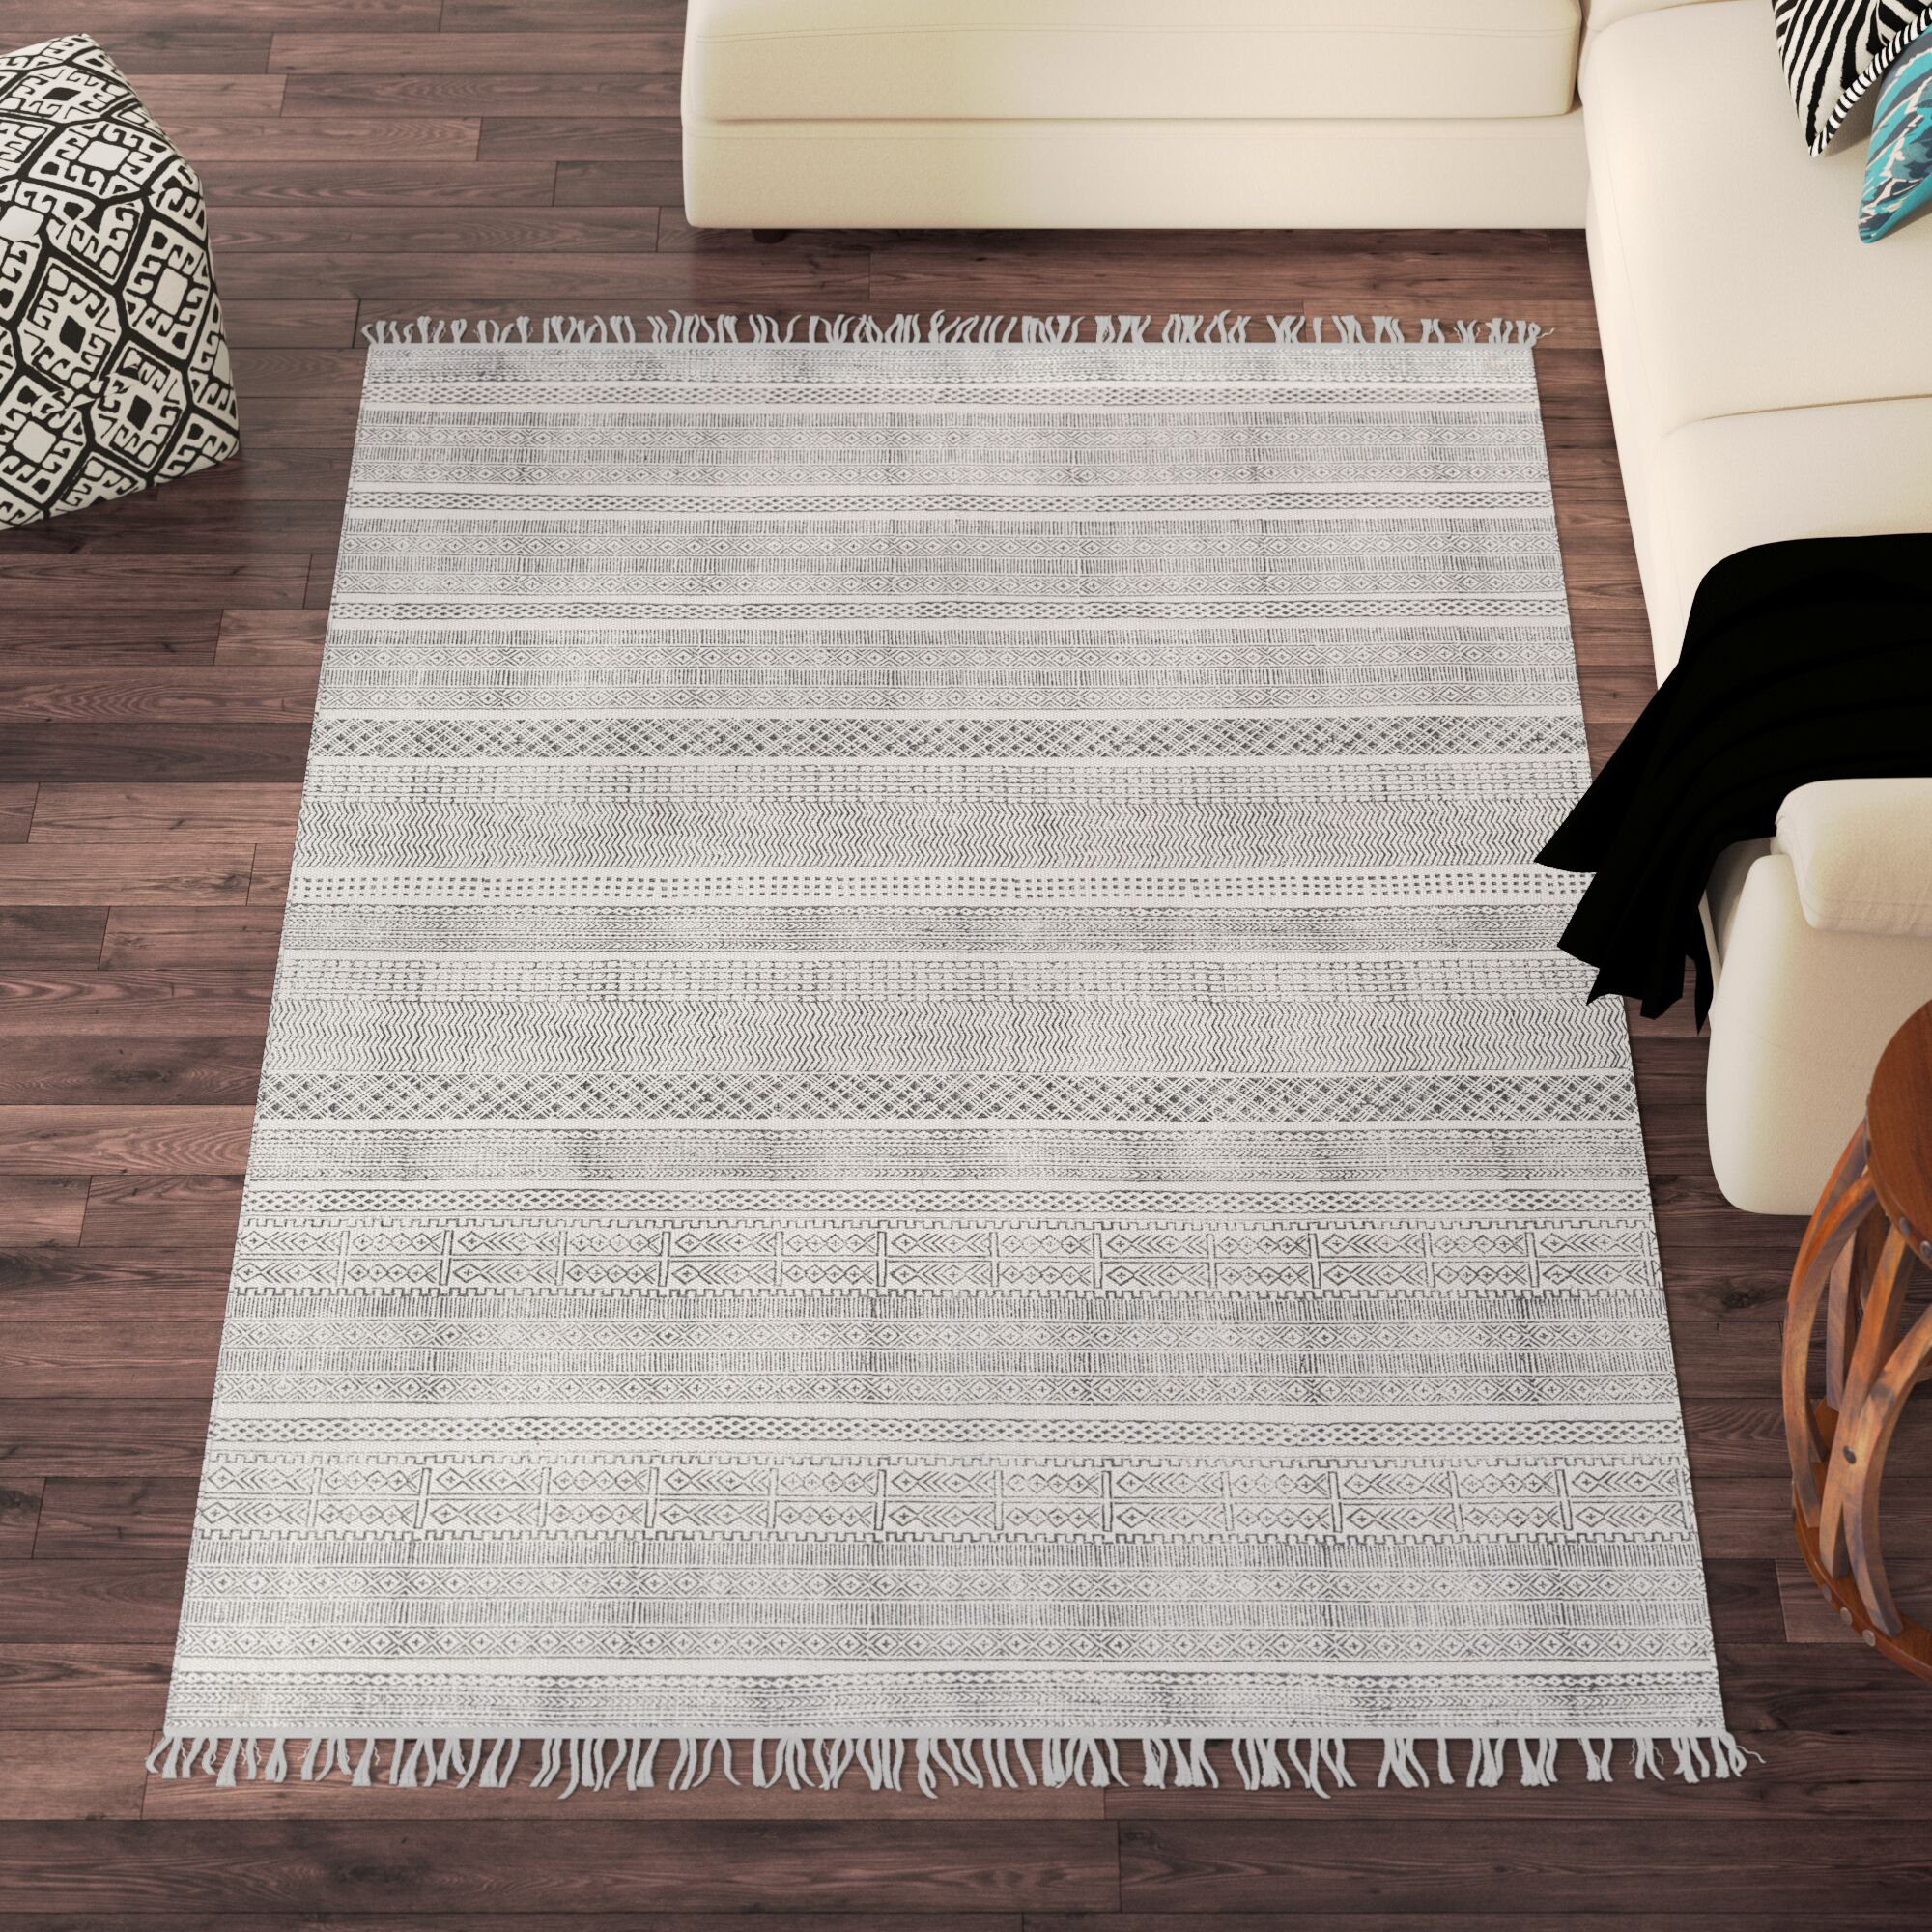 Blairsville Hand-Woven Gray Area Rug Rug Size: Rectangle 5' x 7'6